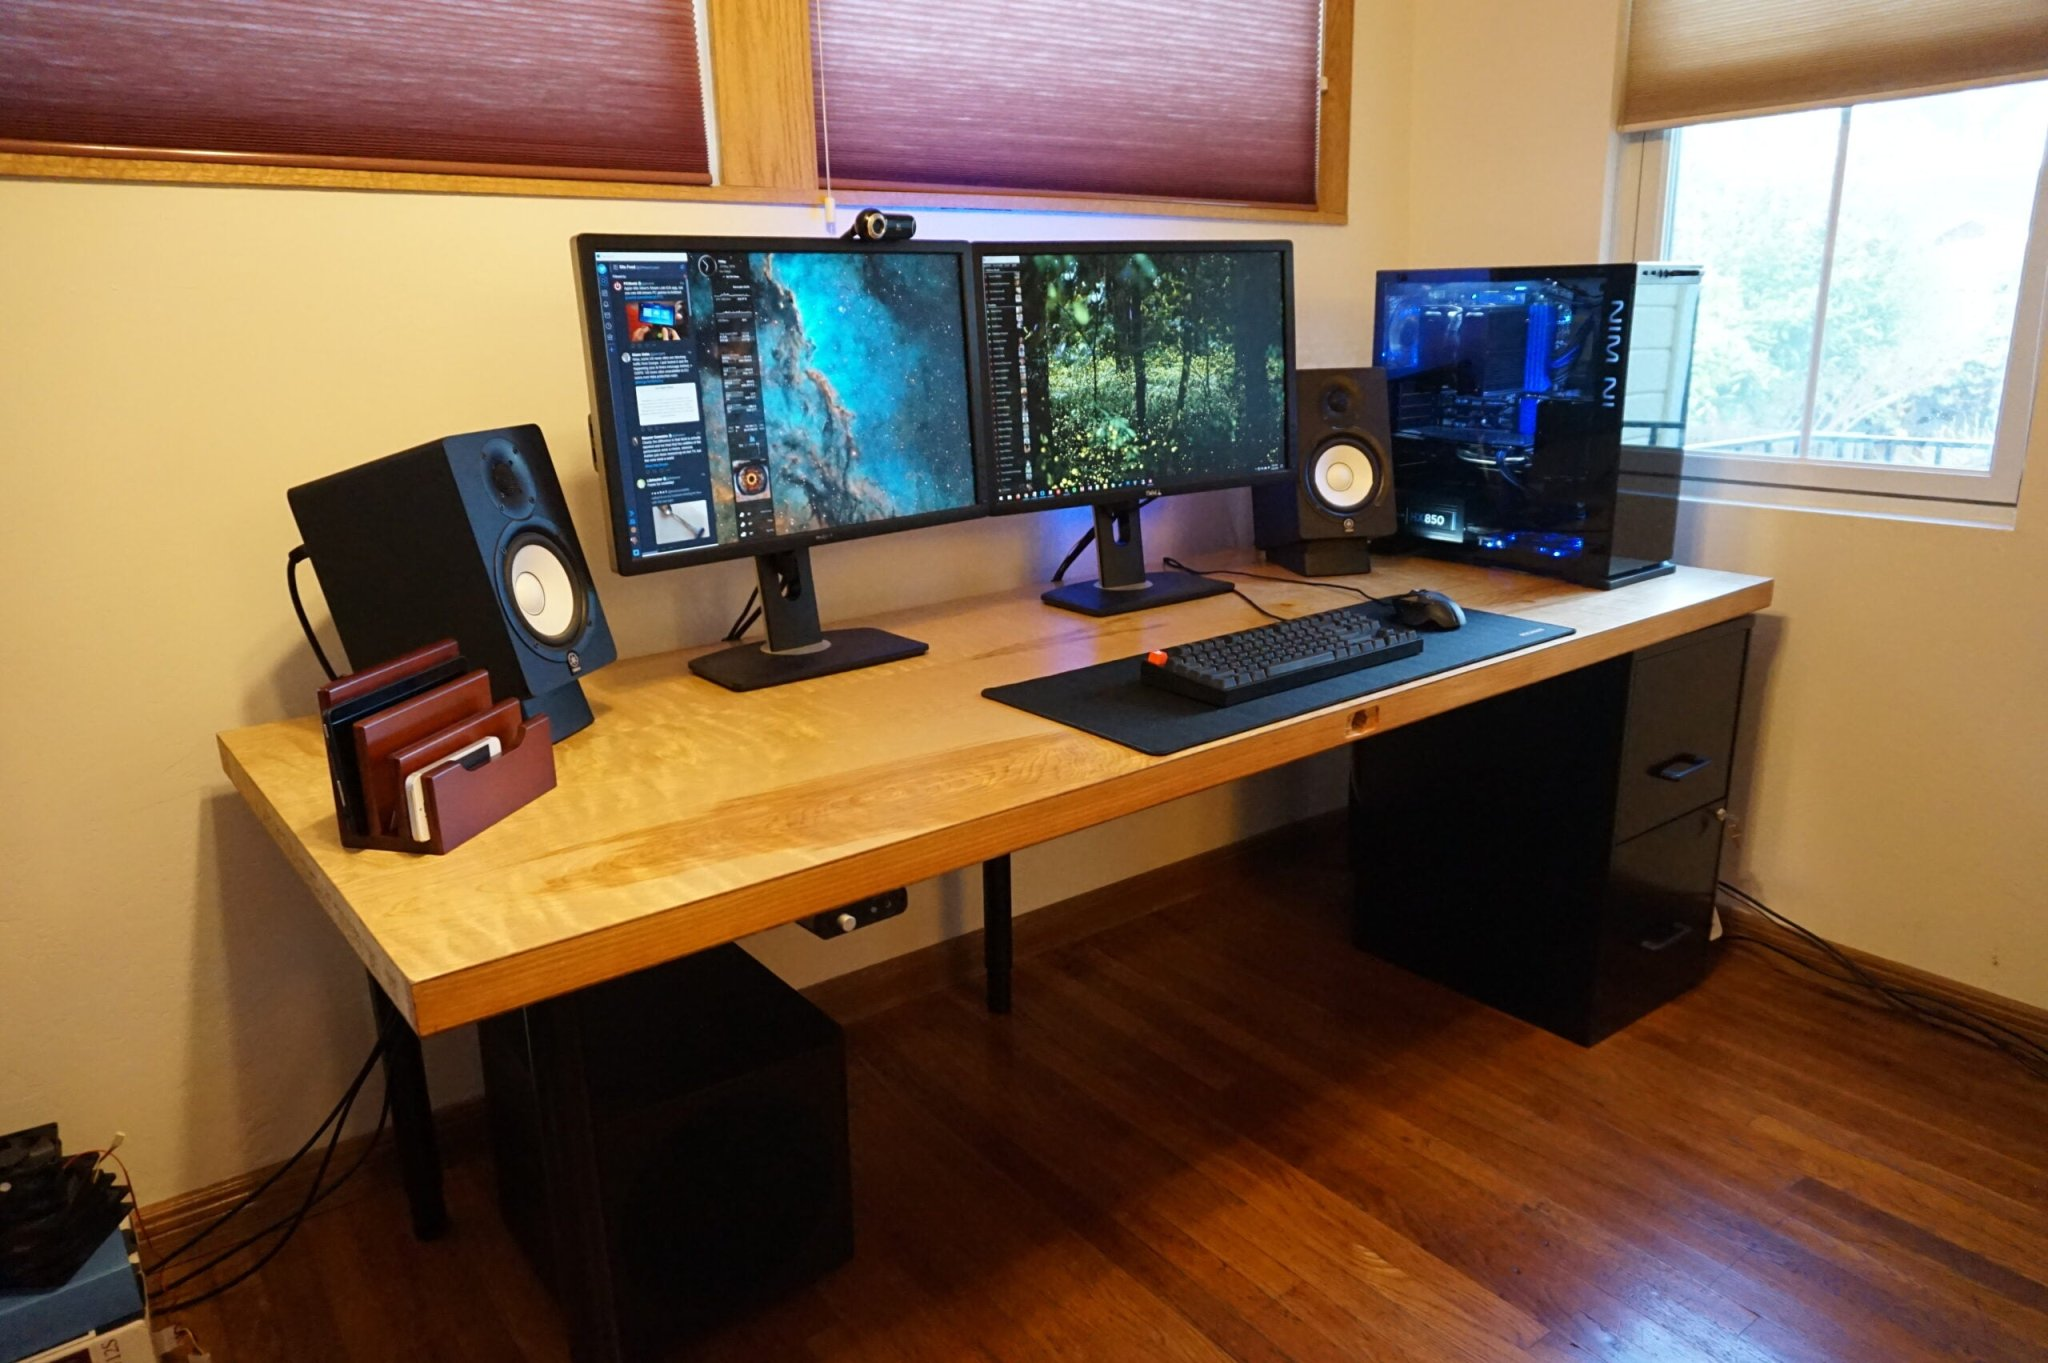 Build your own desk with custom features like USB ports and biometrics